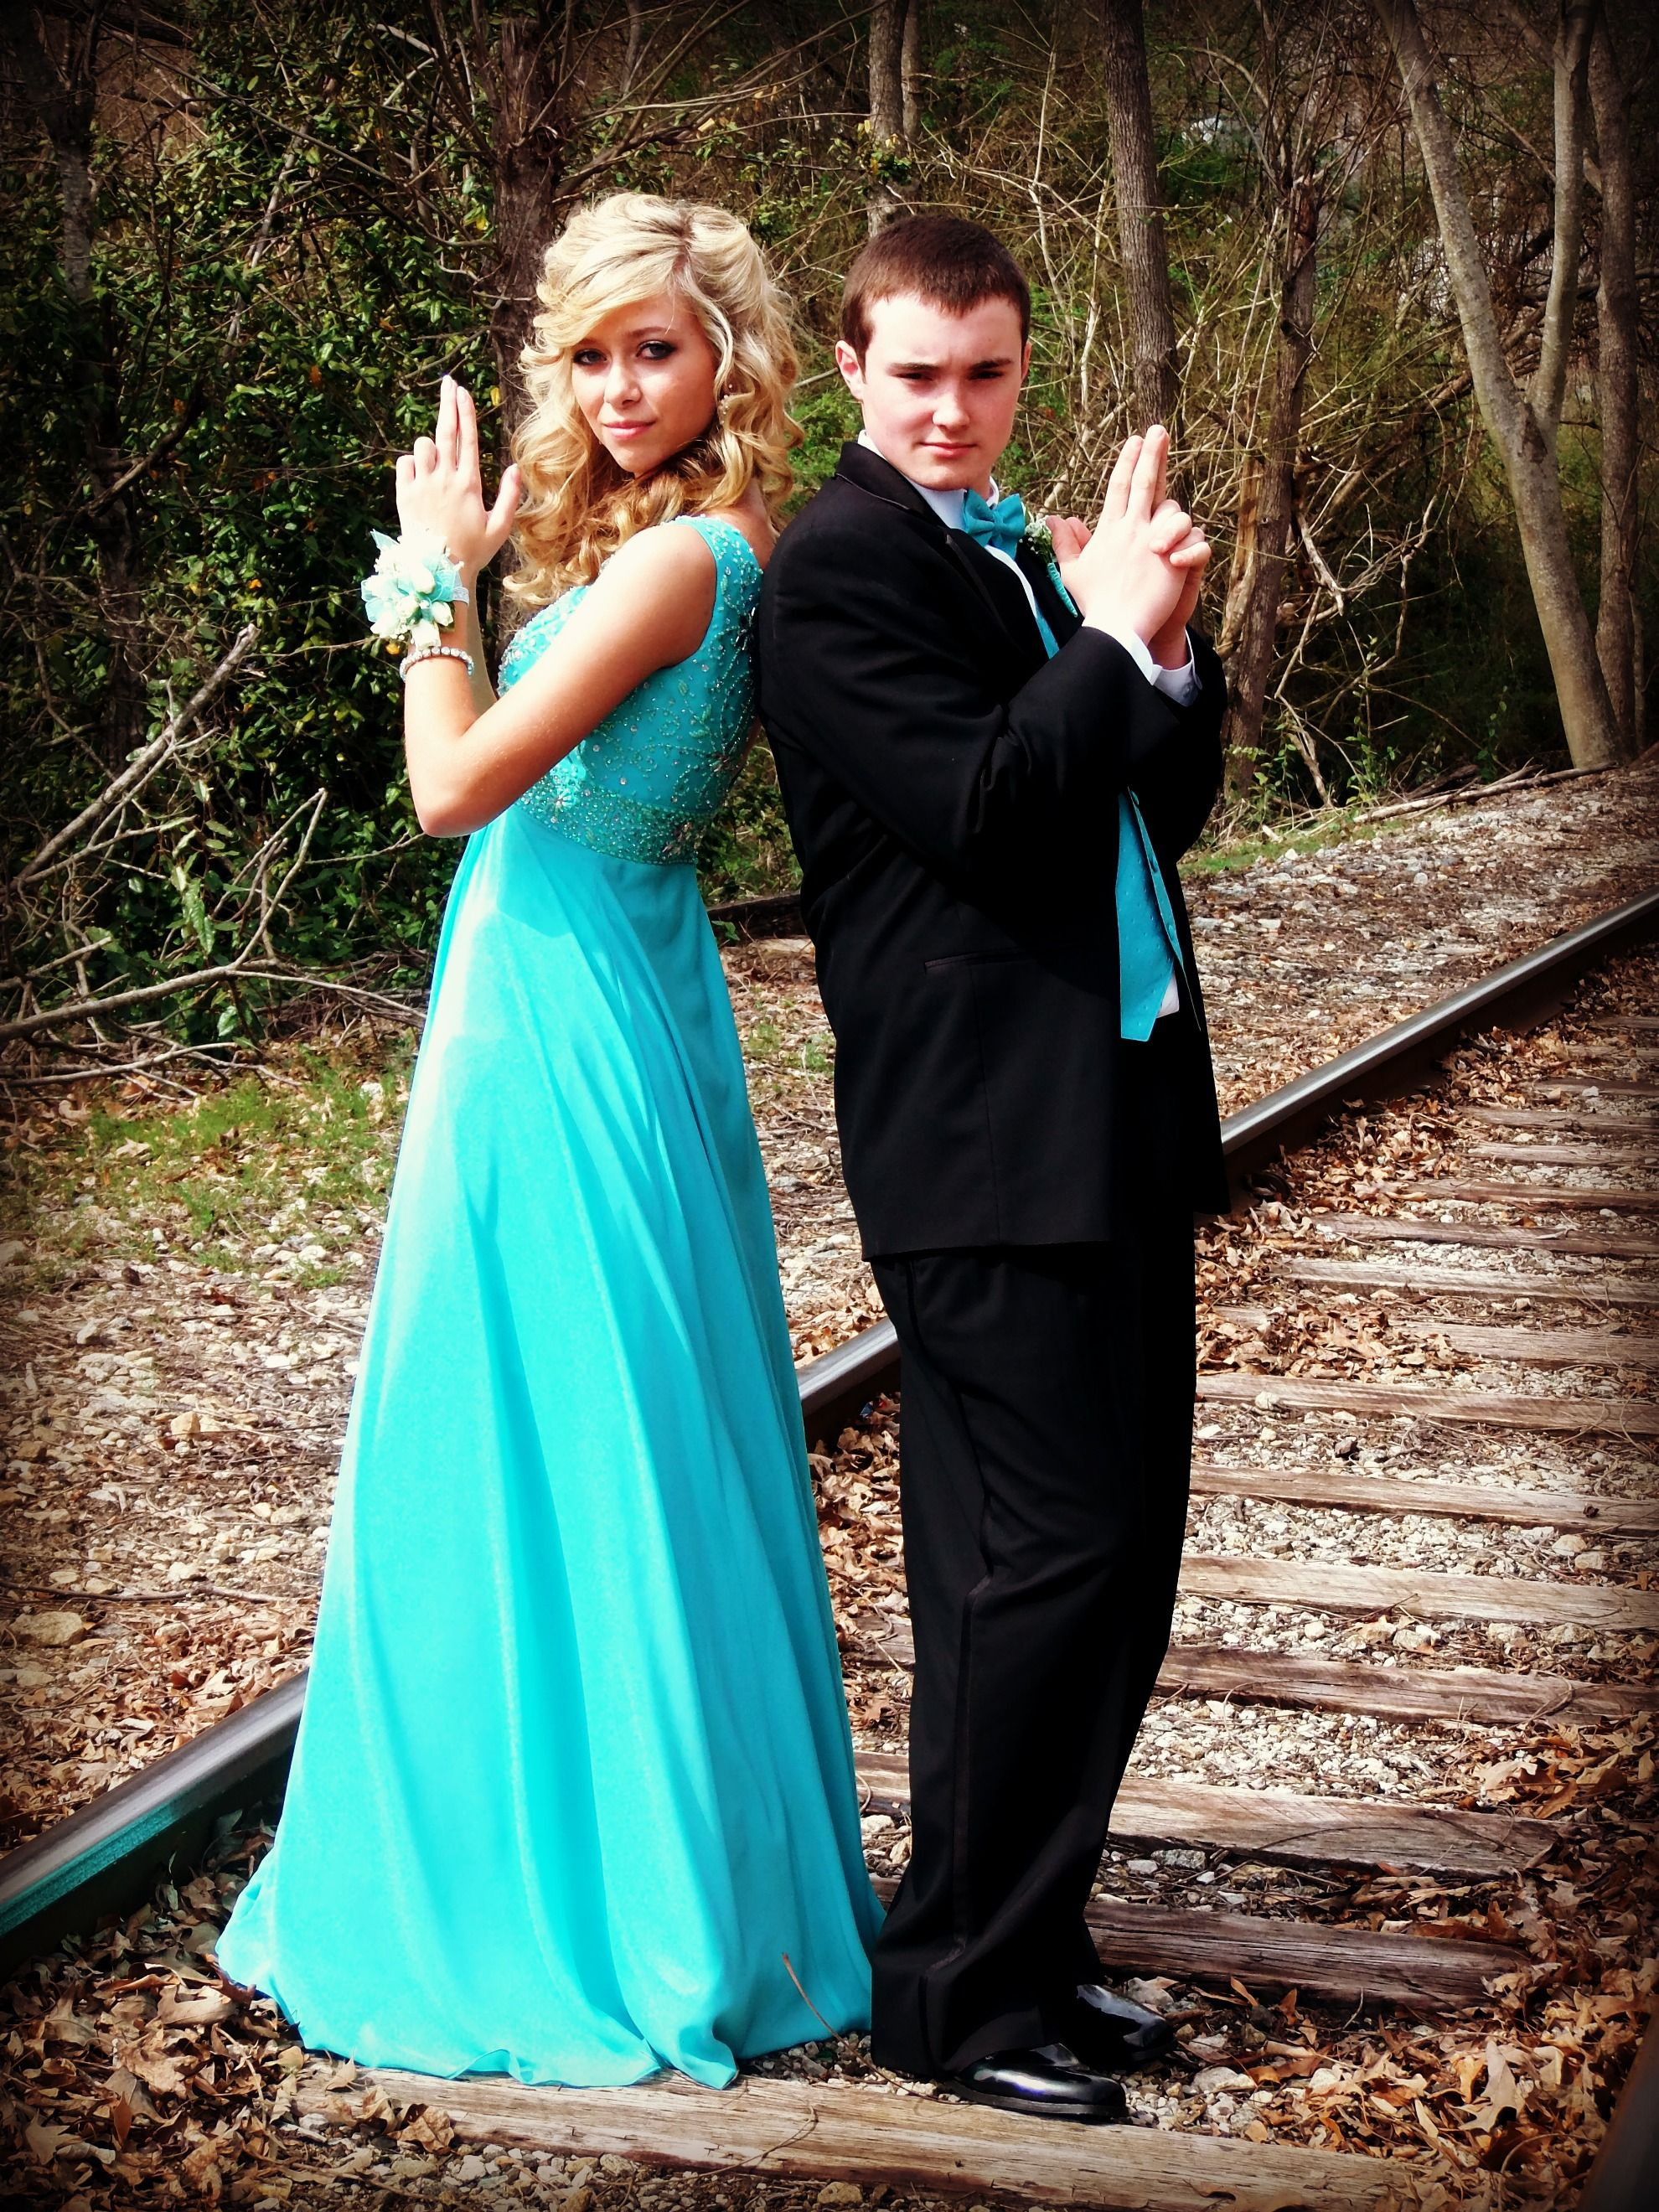 Boutonniere for Prom Best Of Cute Prom Poses Prom Pictures Prom Pinterest